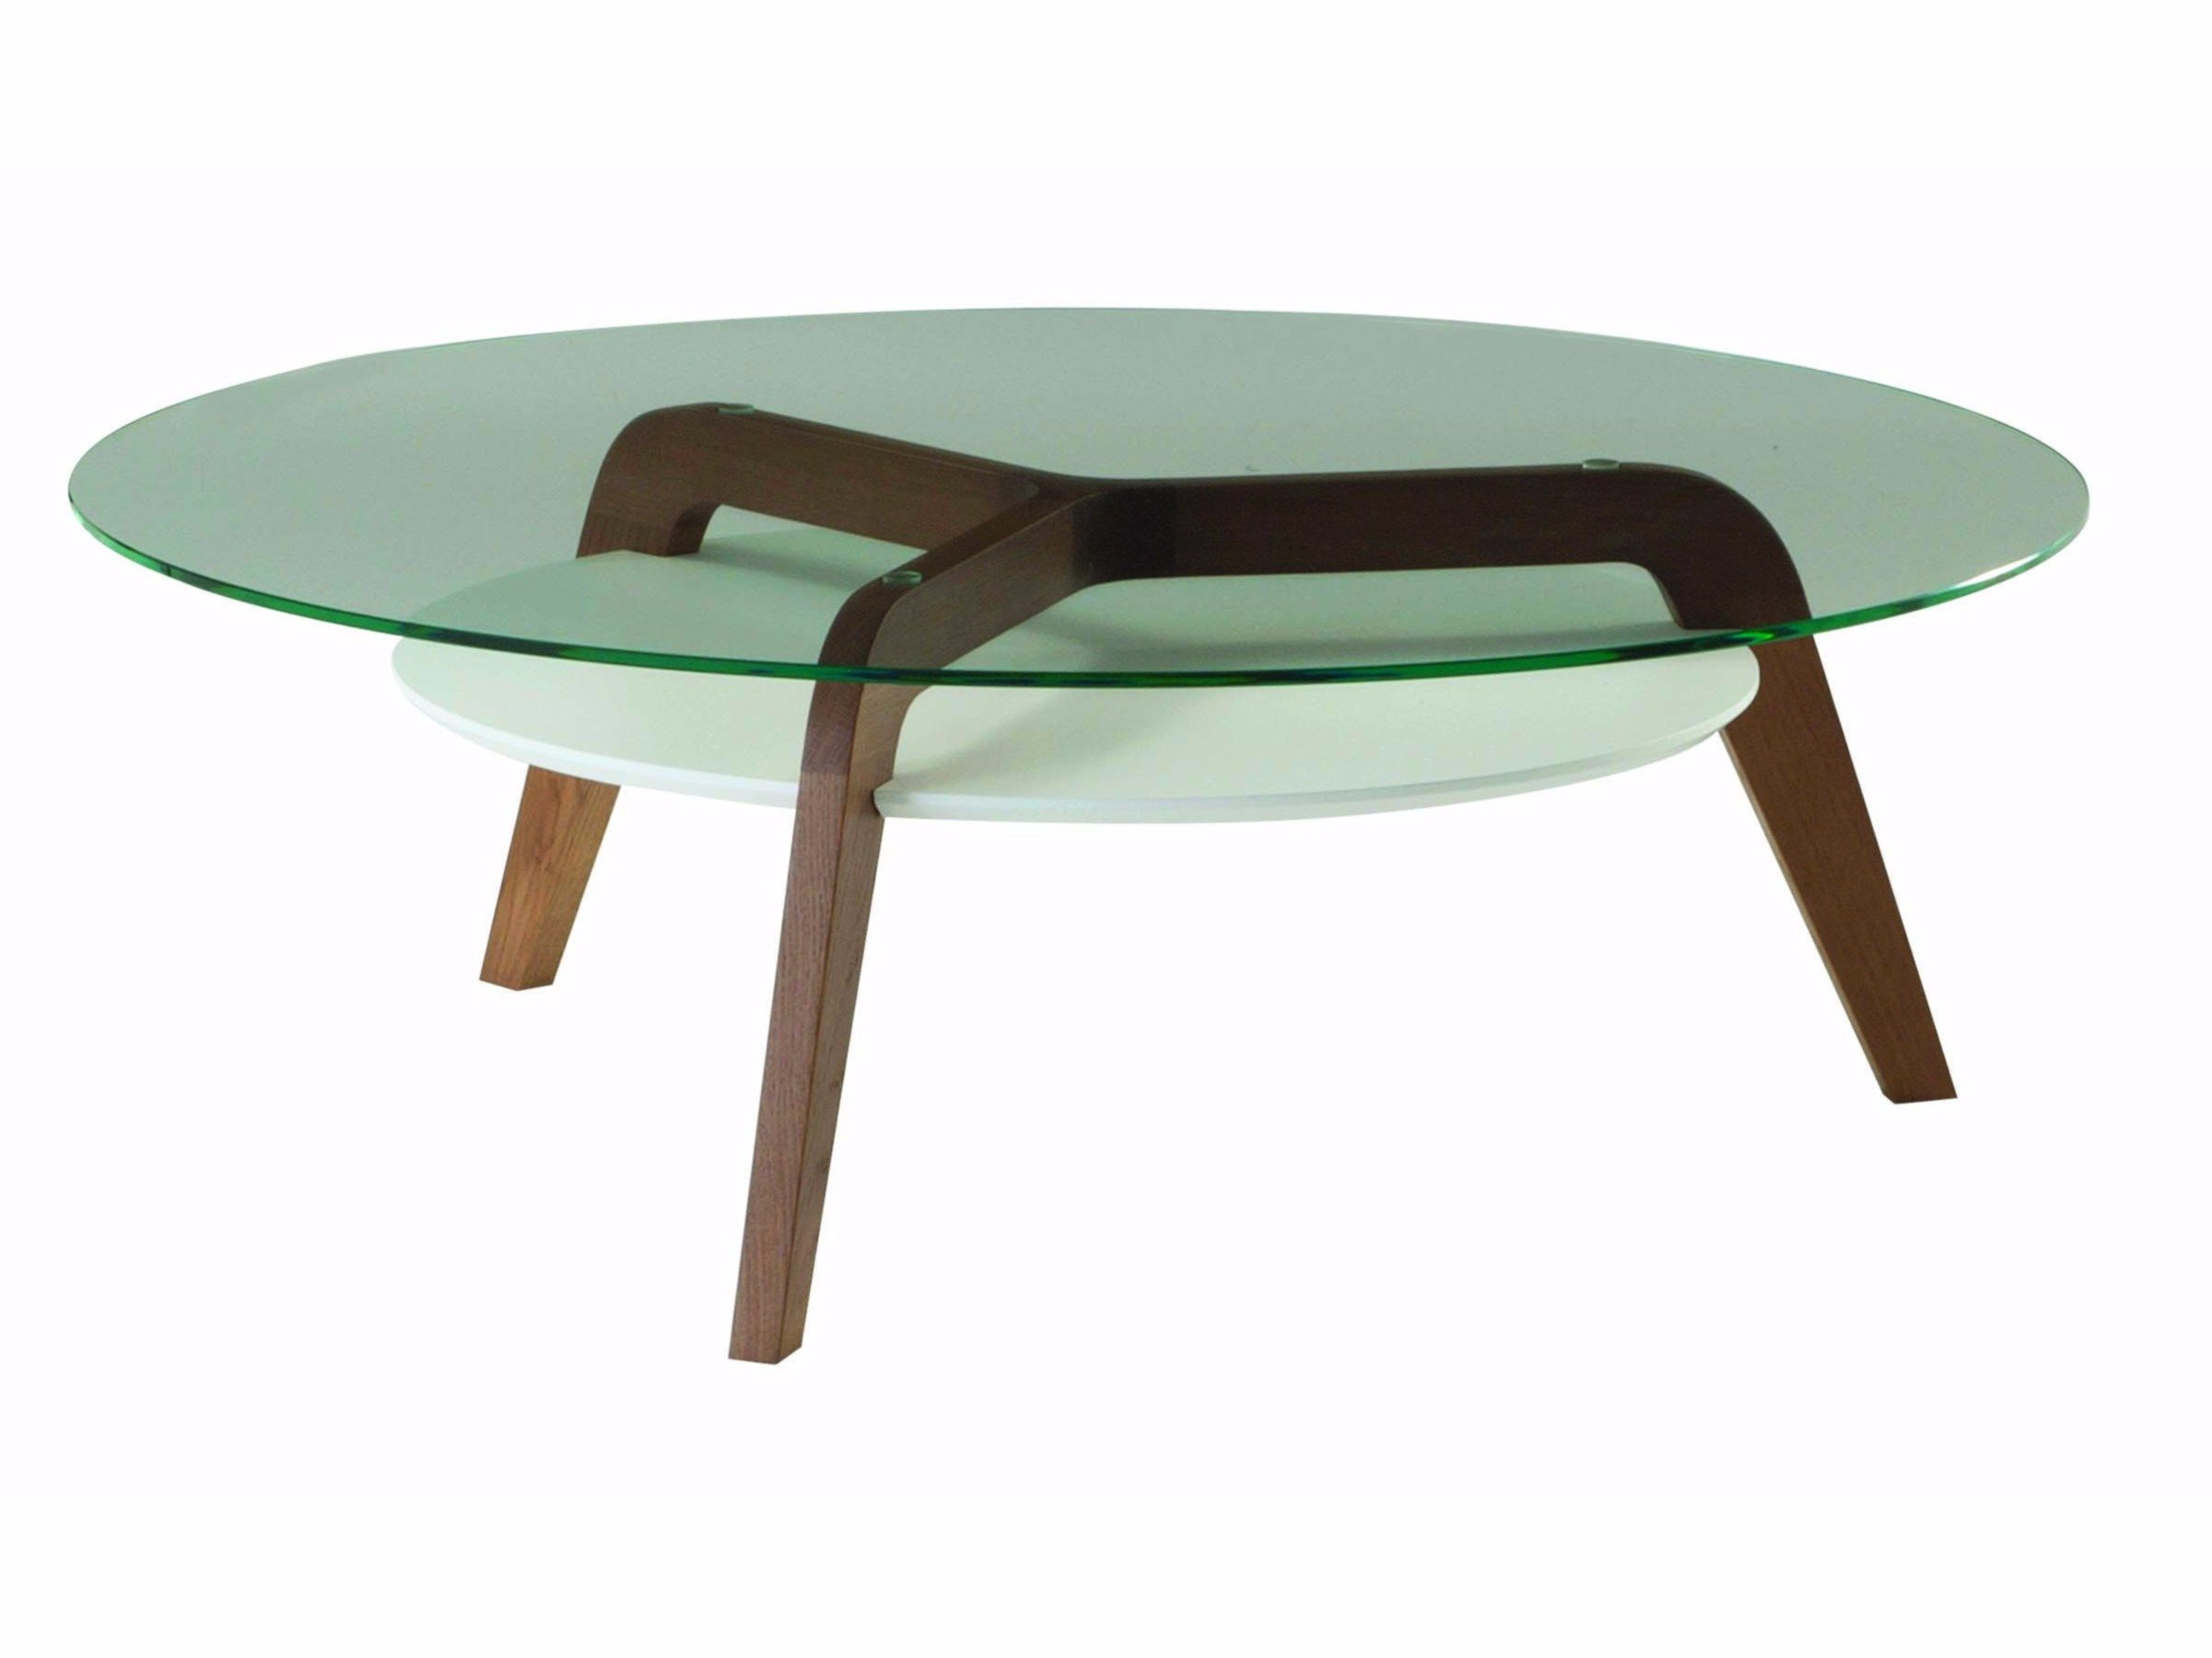 Round Glass Coffee Table For Living Room Flying Glass By Roche Bobois Design Sacha Lakic Round Glass Coffee Table Coffee Table Glass Coffee Table [ 1800 x 2401 Pixel ]